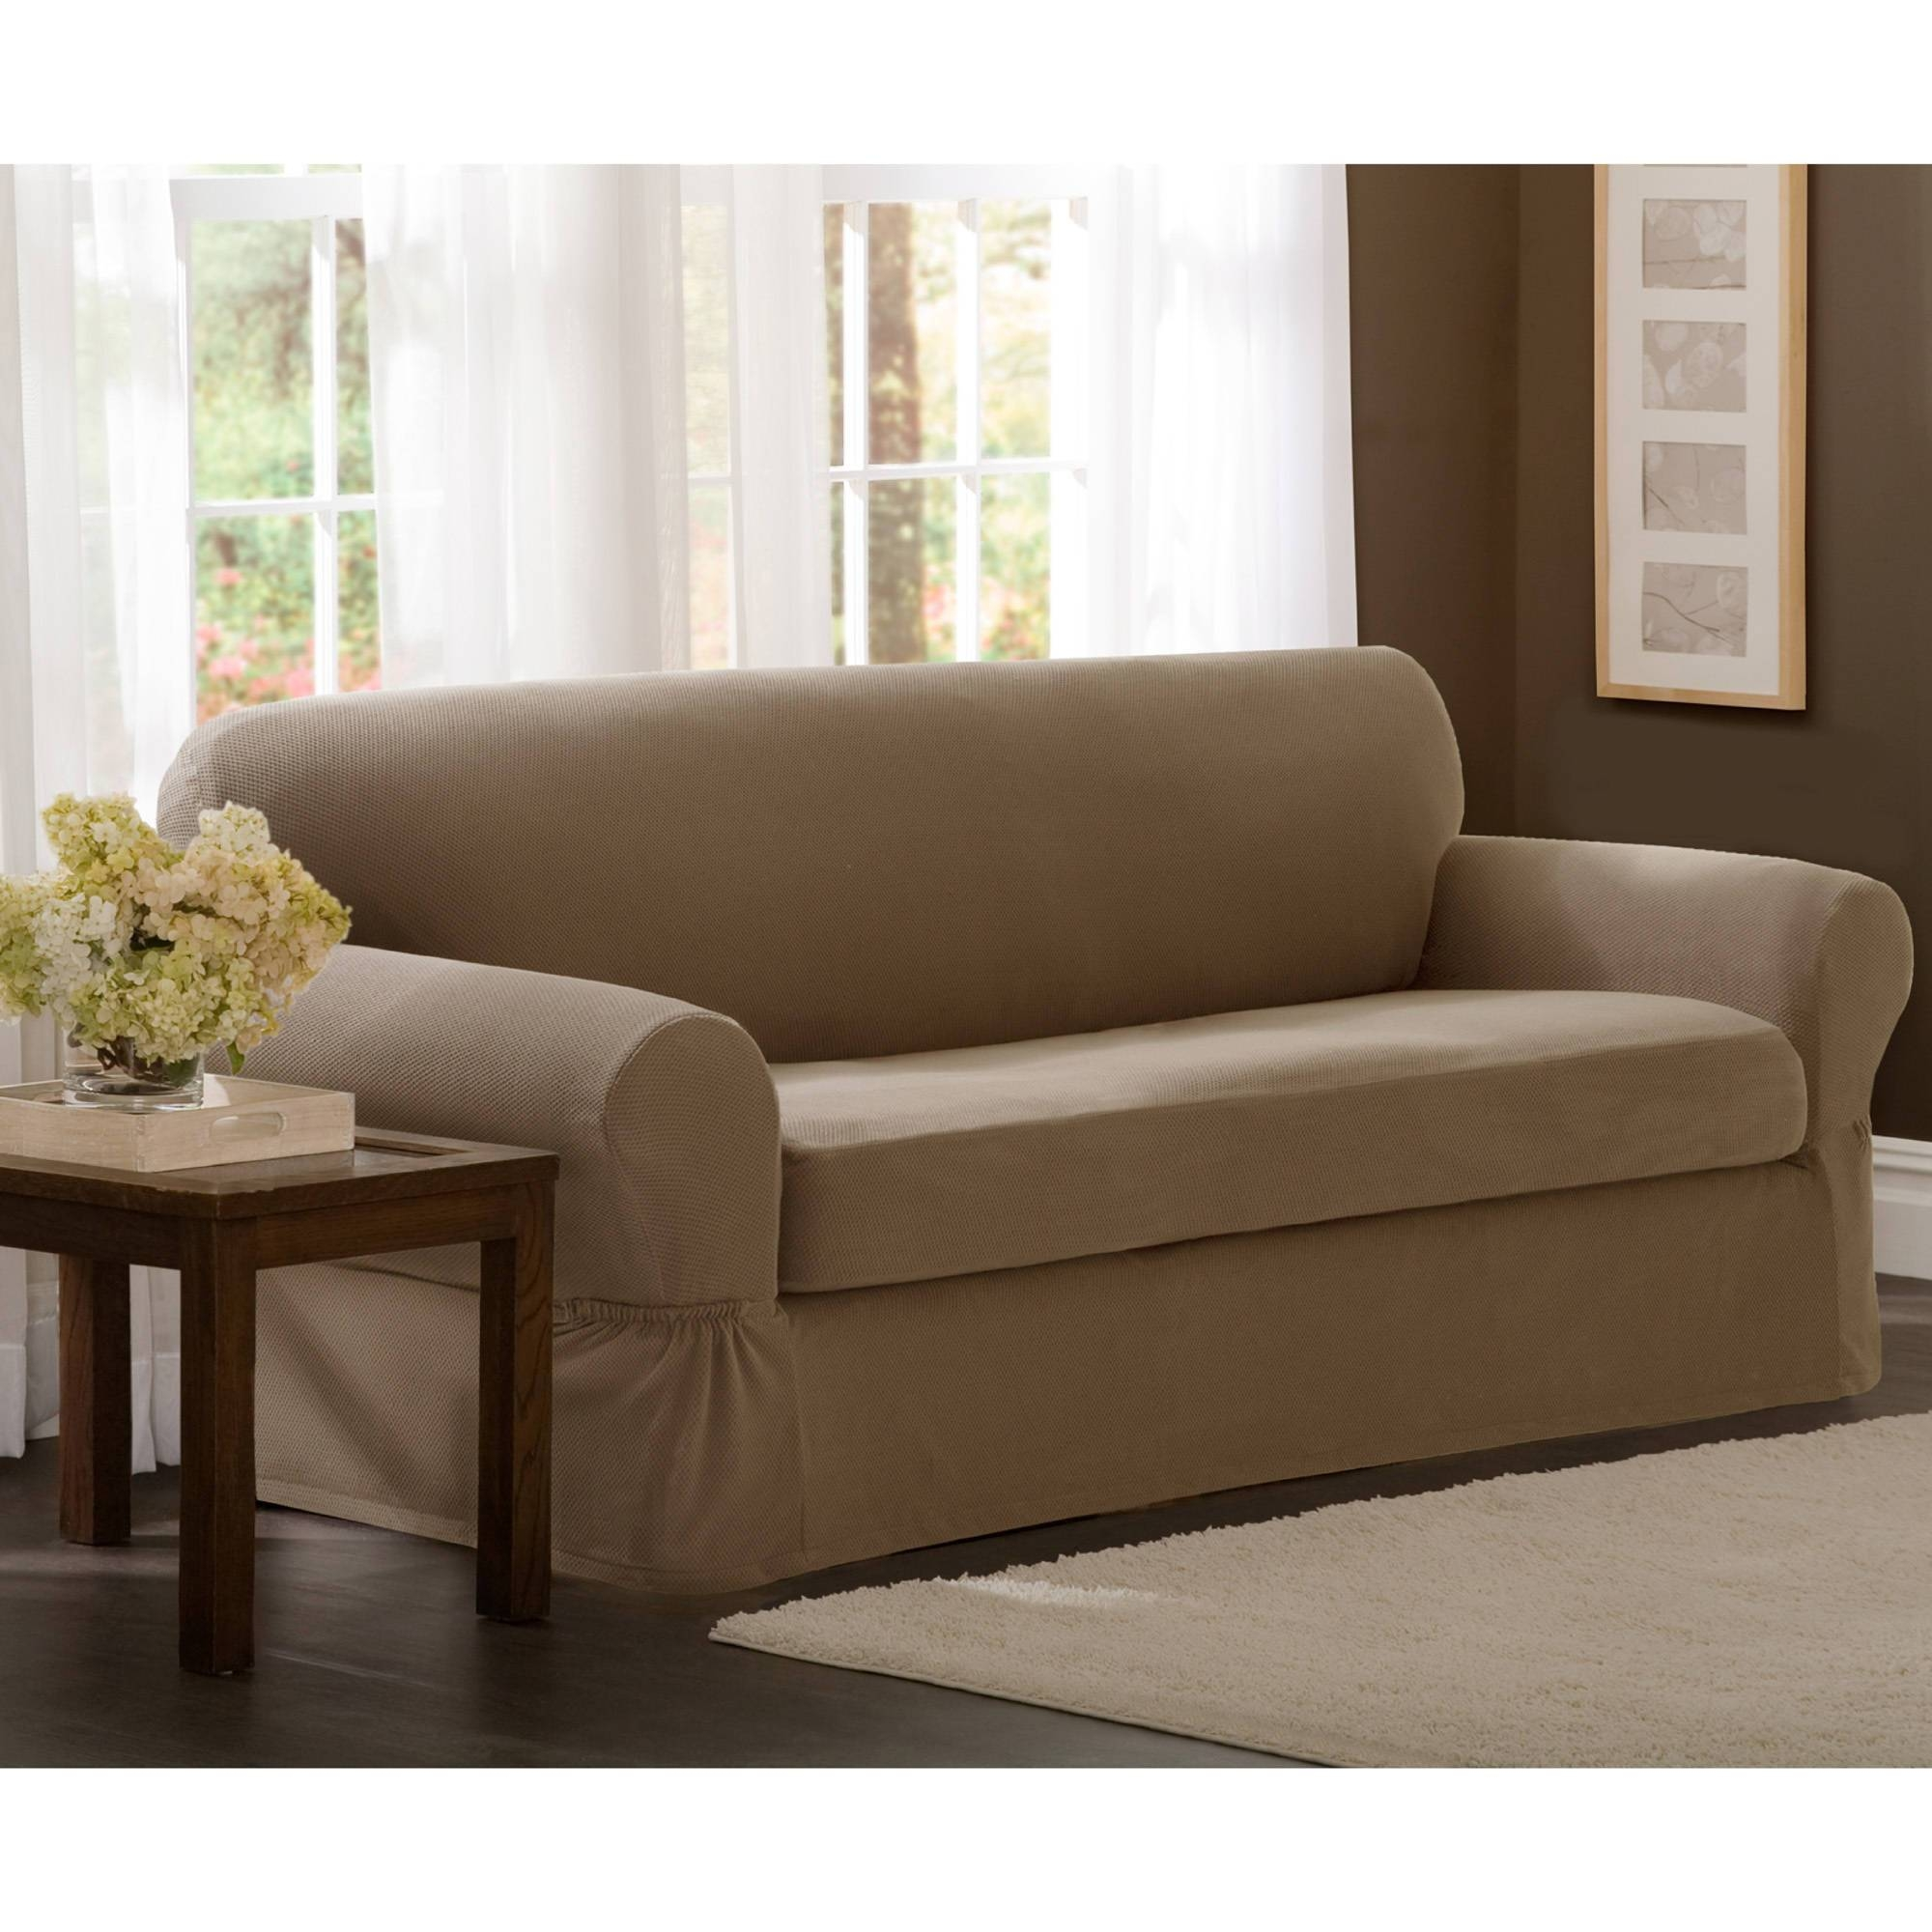 Maytex Stretch 2-Piece Sofa Slipcover - Walmart pertaining to 2 Piece Sofas (Image 9 of 15)